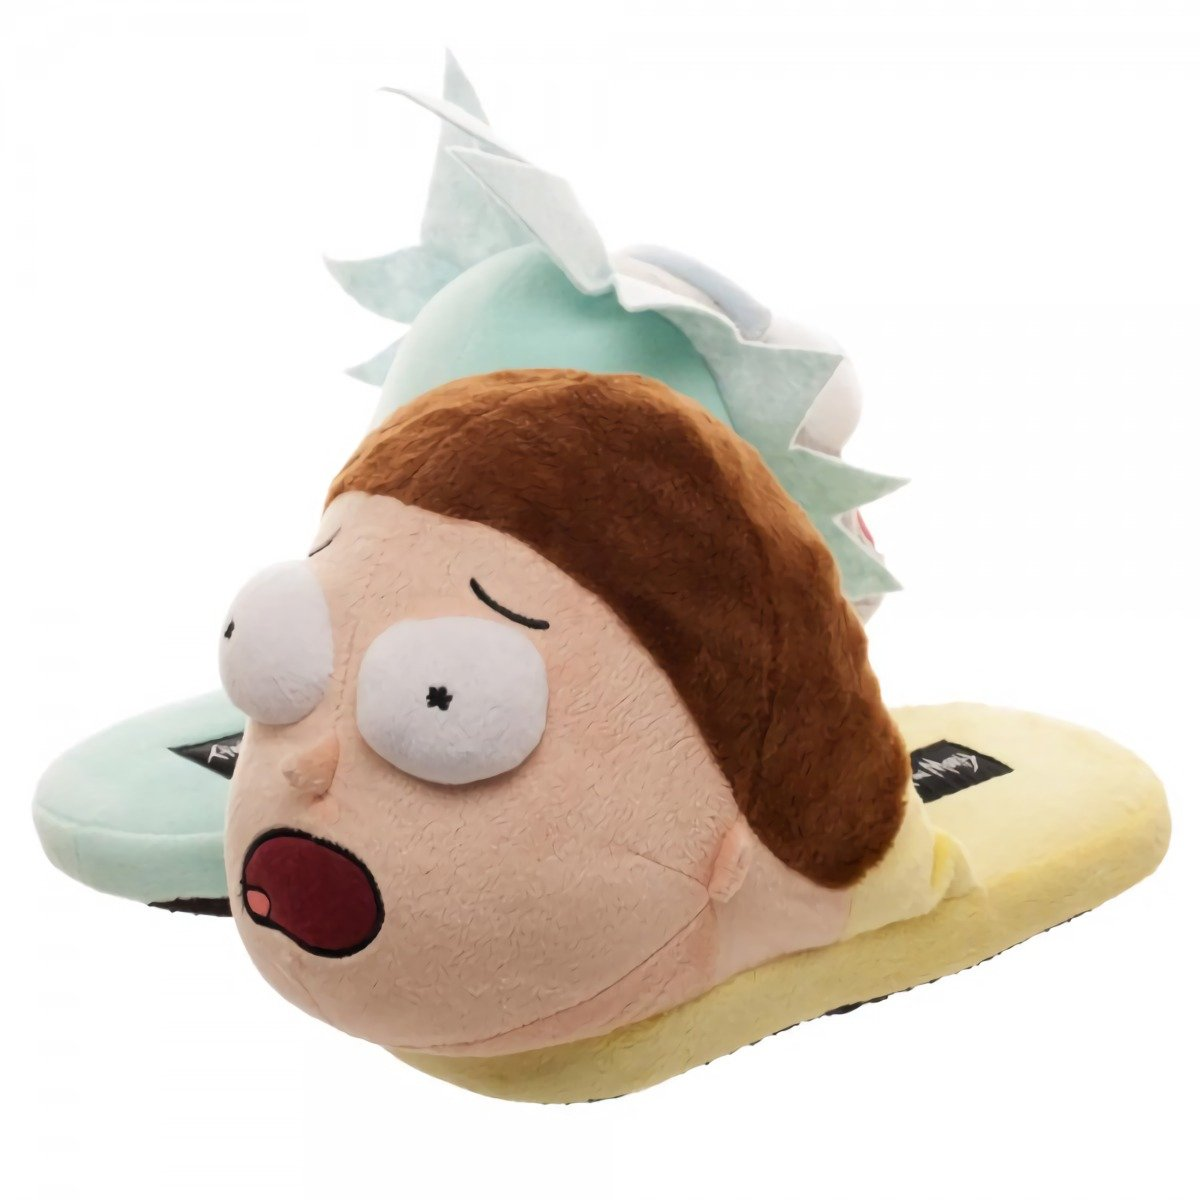 Rick & Morty Besties 3D Slide Plush Slippers, Large (9/10) BioWorld HS5UKSRIC